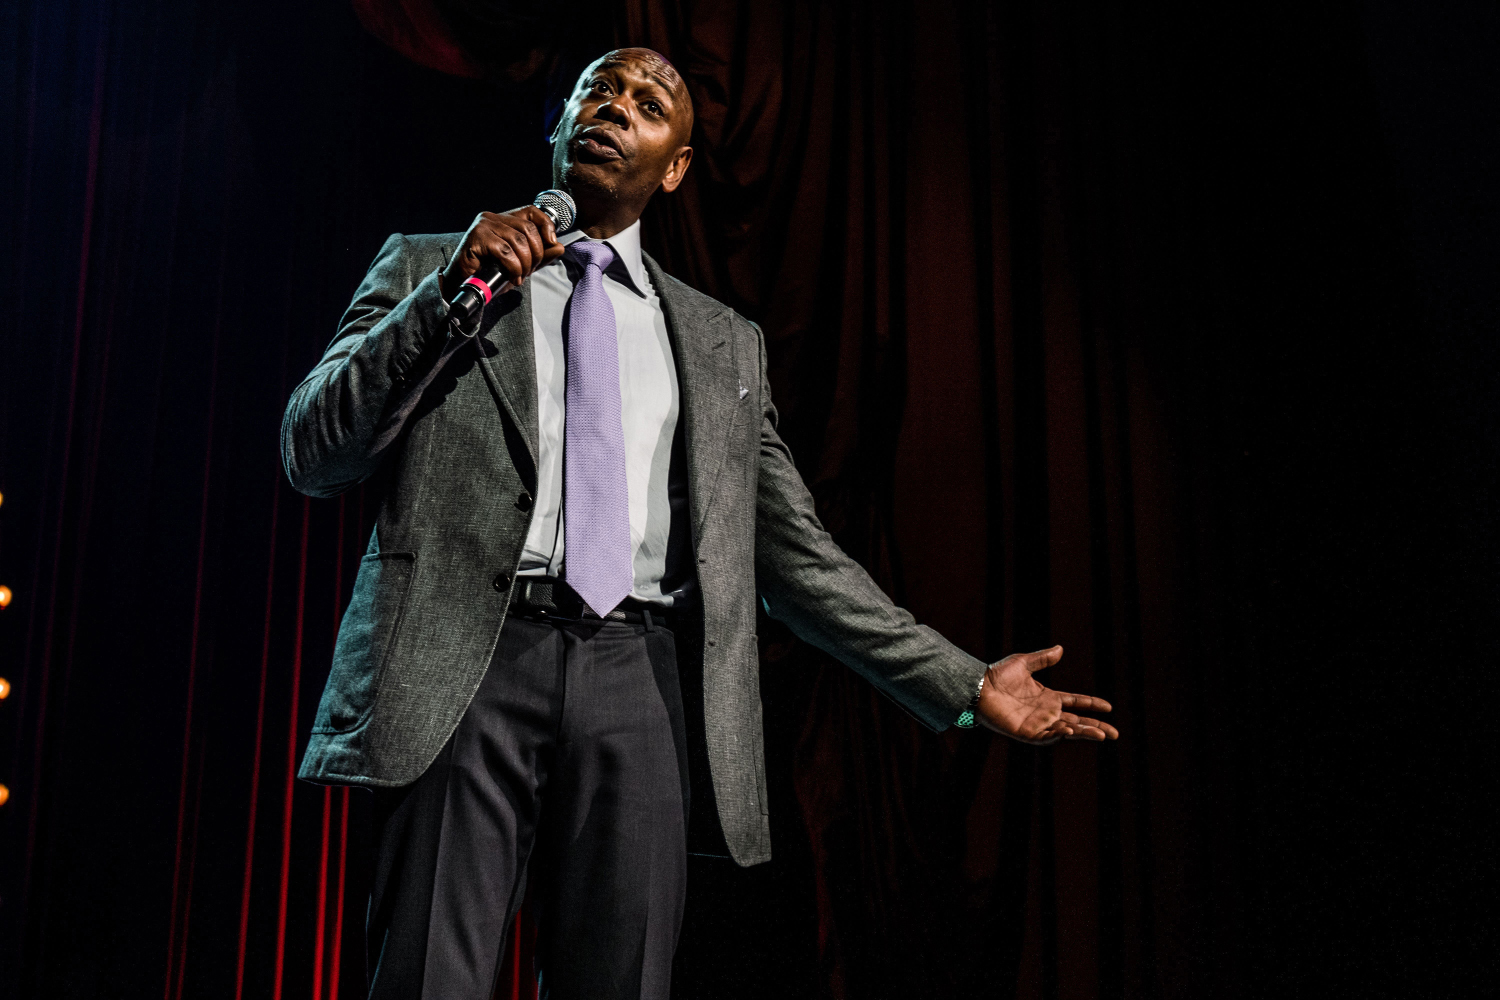 Dave Chappelle performs at the Radio City Music Hall on Aug. 24, 2017 in New York City.